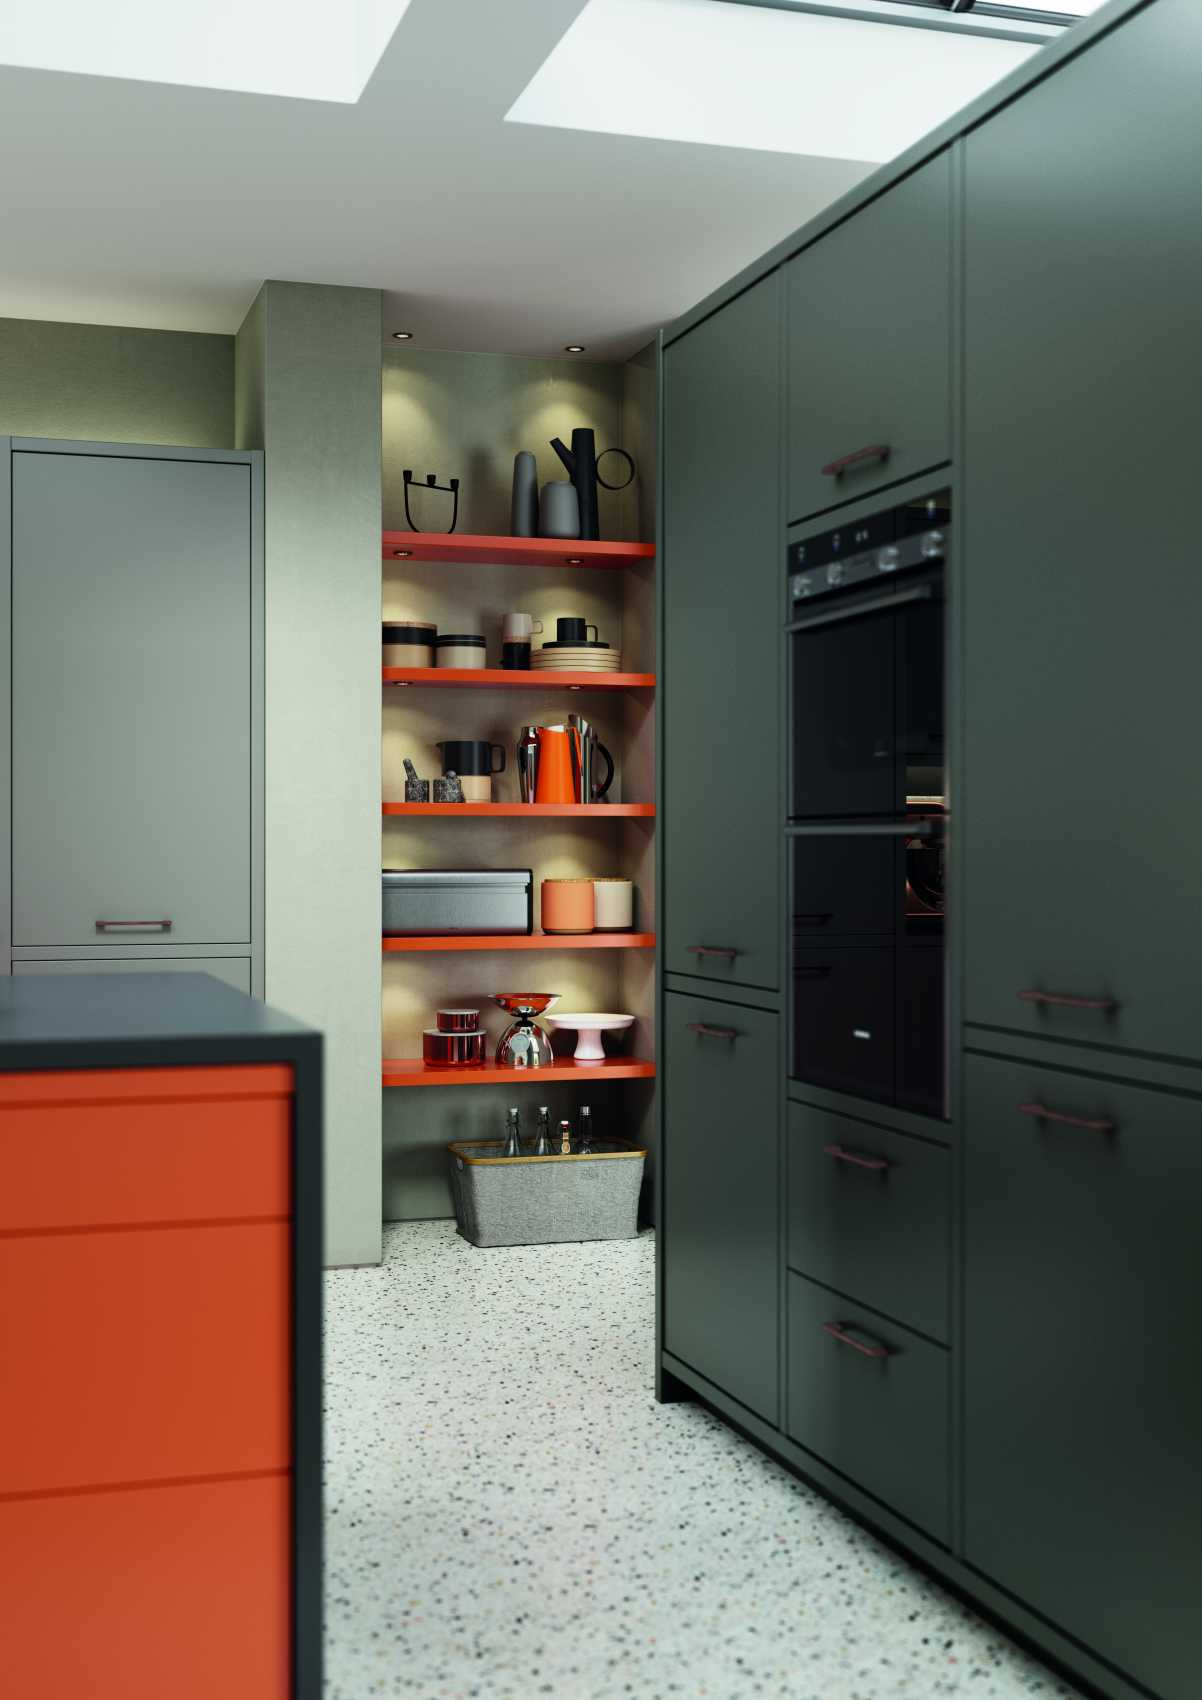 matte orange and graphite modern kitchen doors and shelving